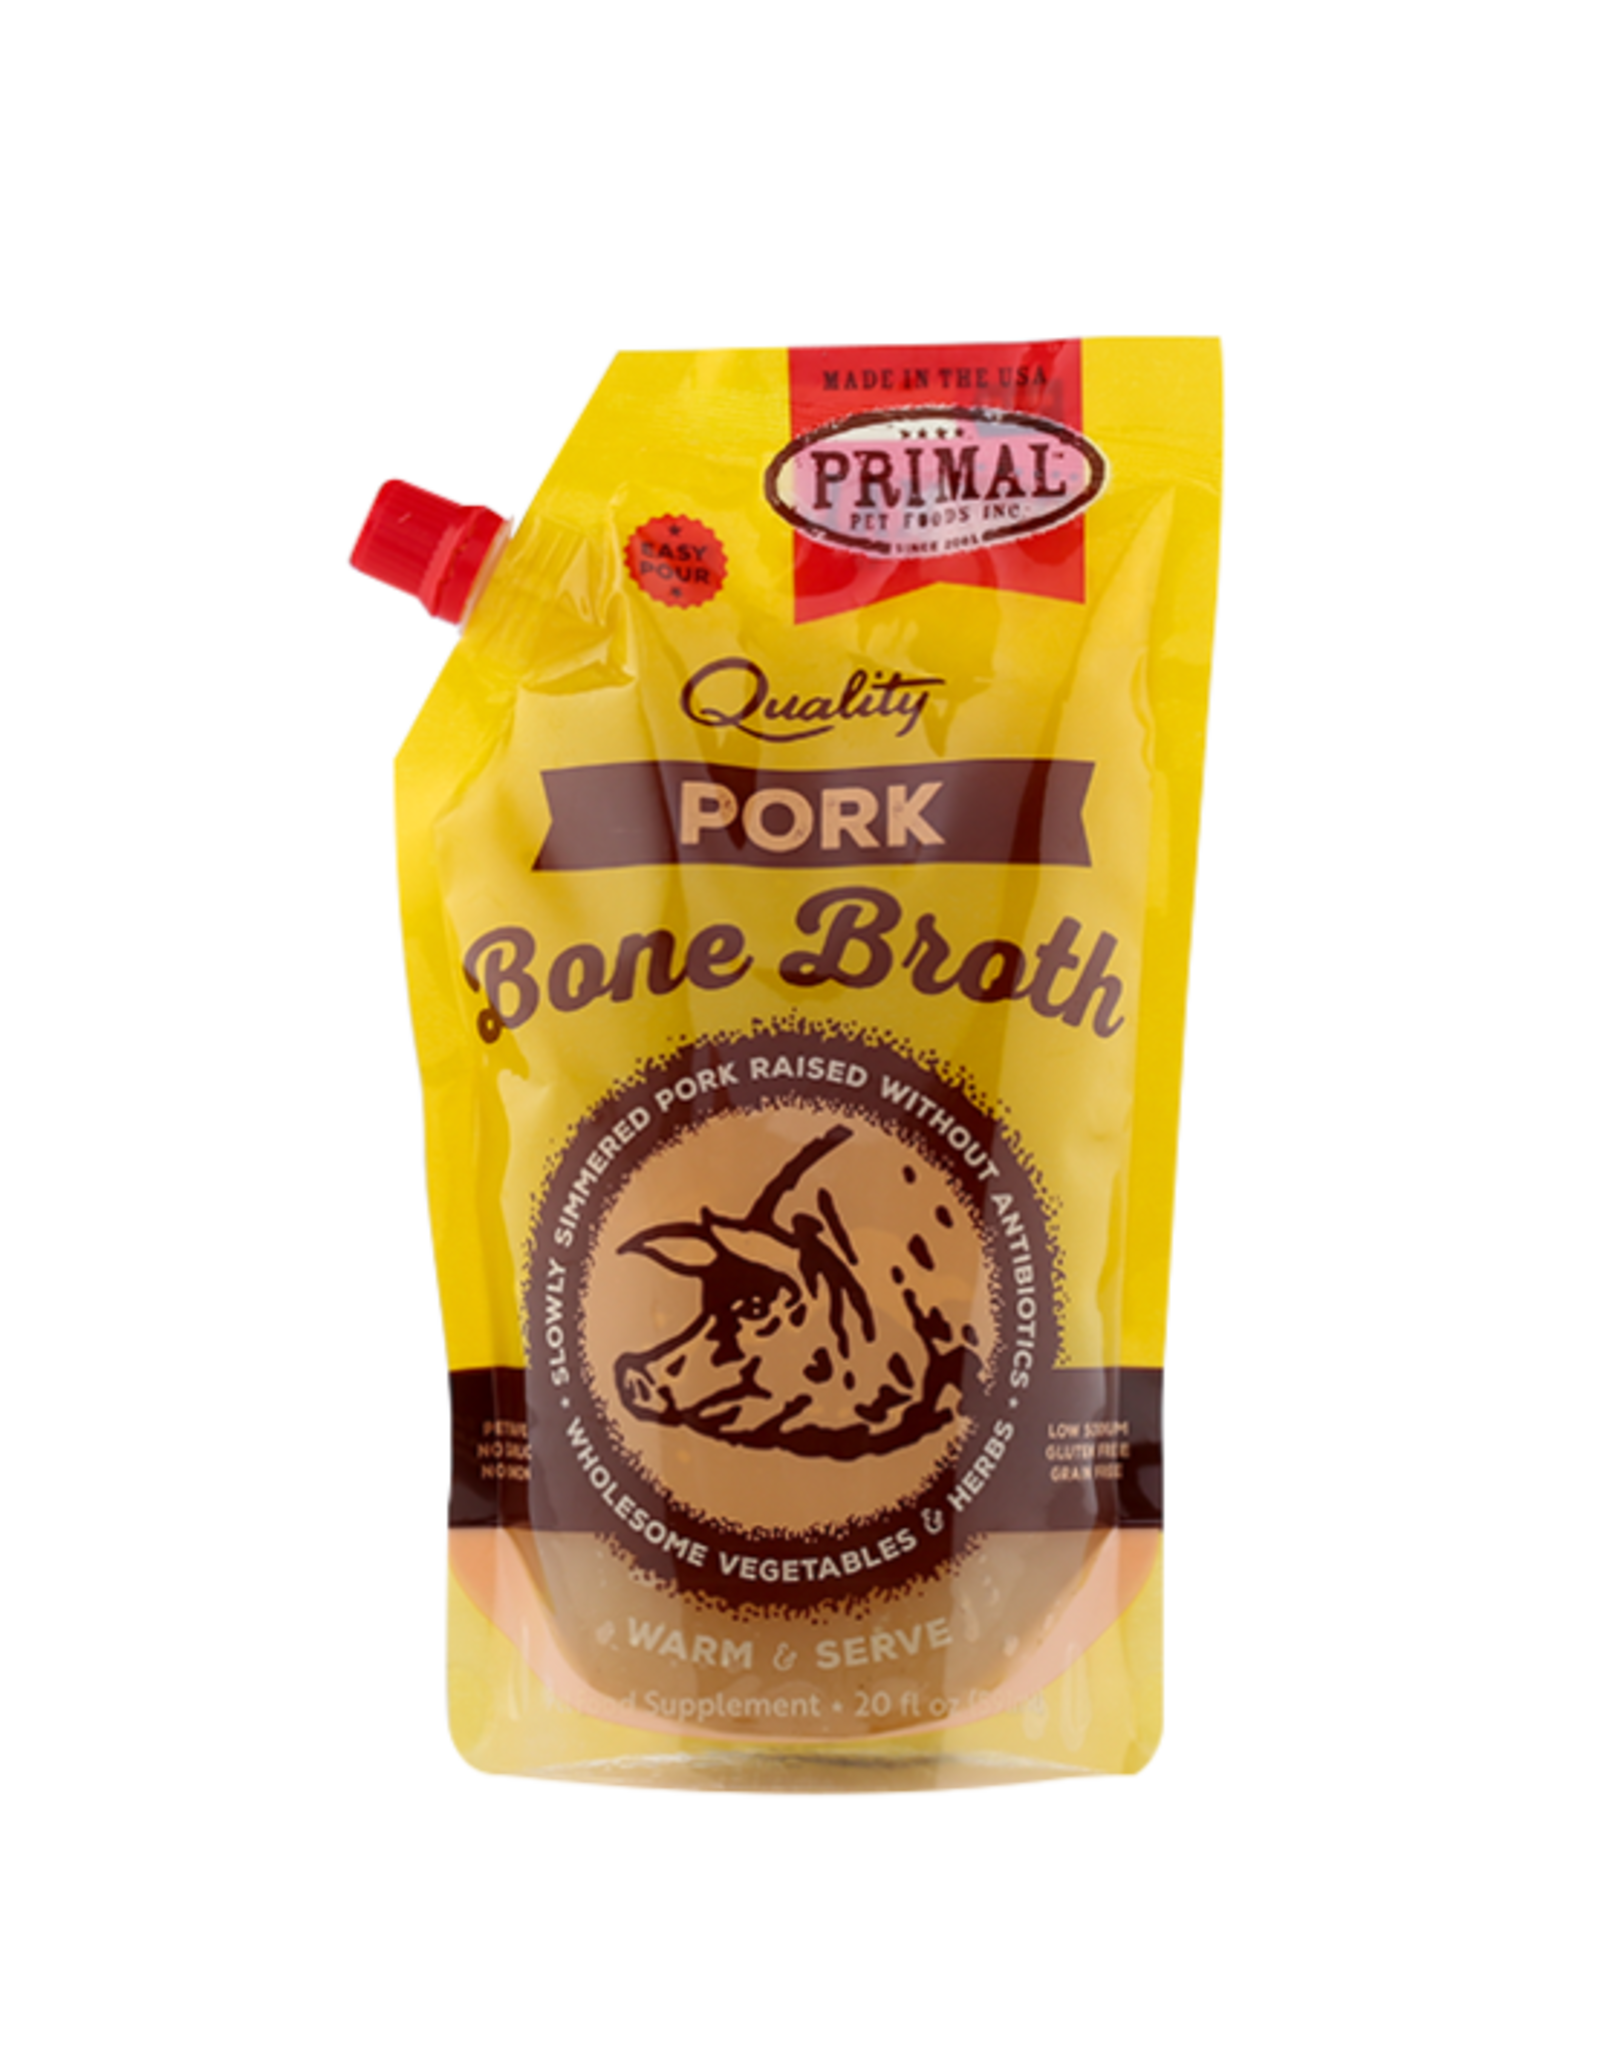 Primal Pet Foods Primal Bone Broth Pork